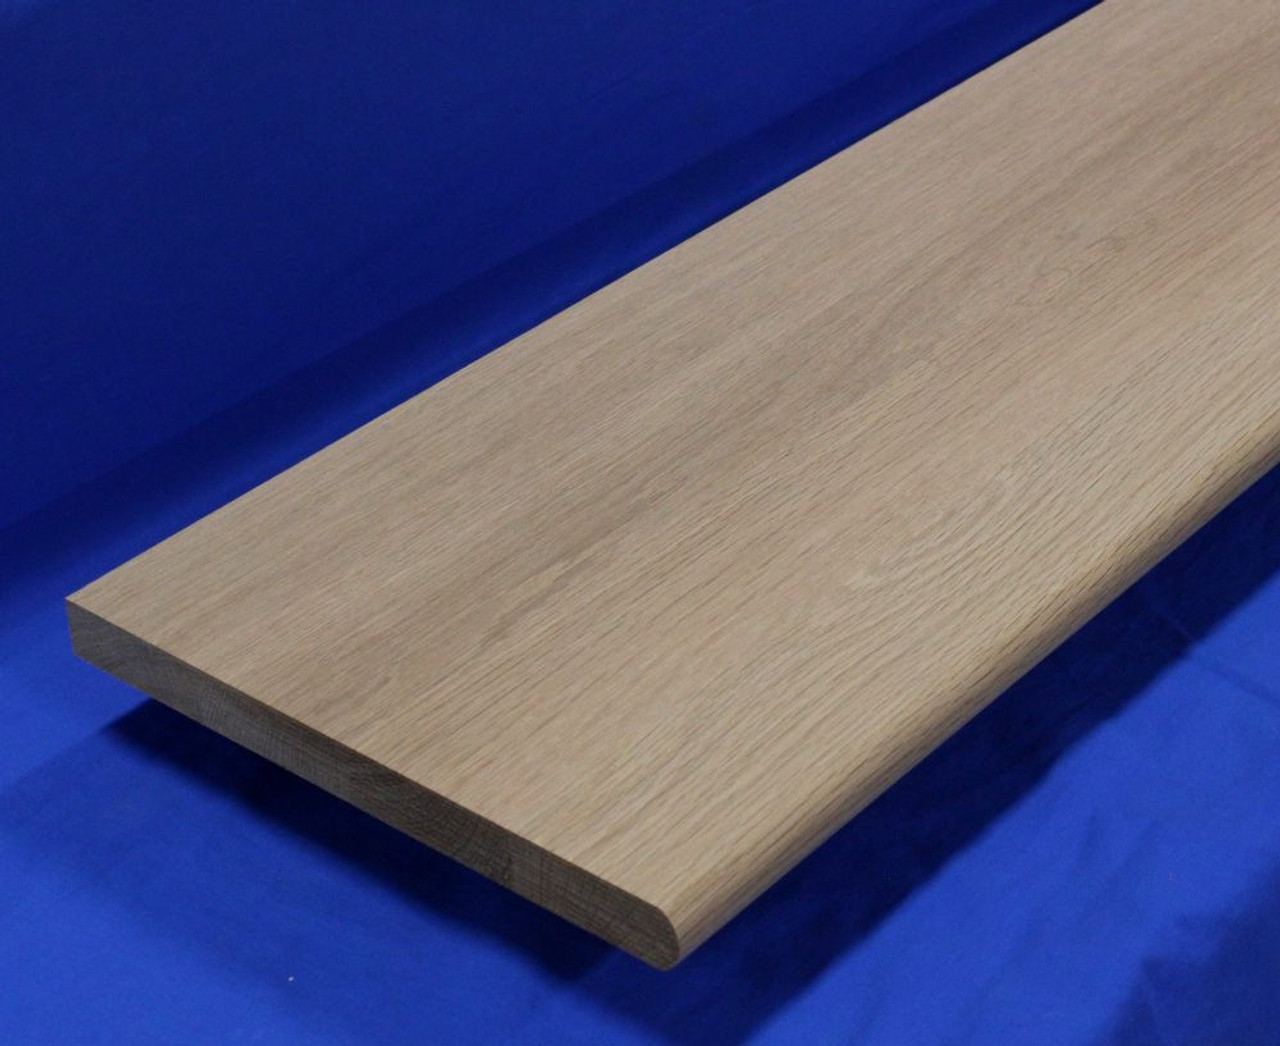 Wood Stair Treads 1Inch Shop Online Made In Usa Kinzel Wood | 36 Oak Stair Treads | Stair Parts | Red Oak | Lowes | White Oak | Unfinished Solid